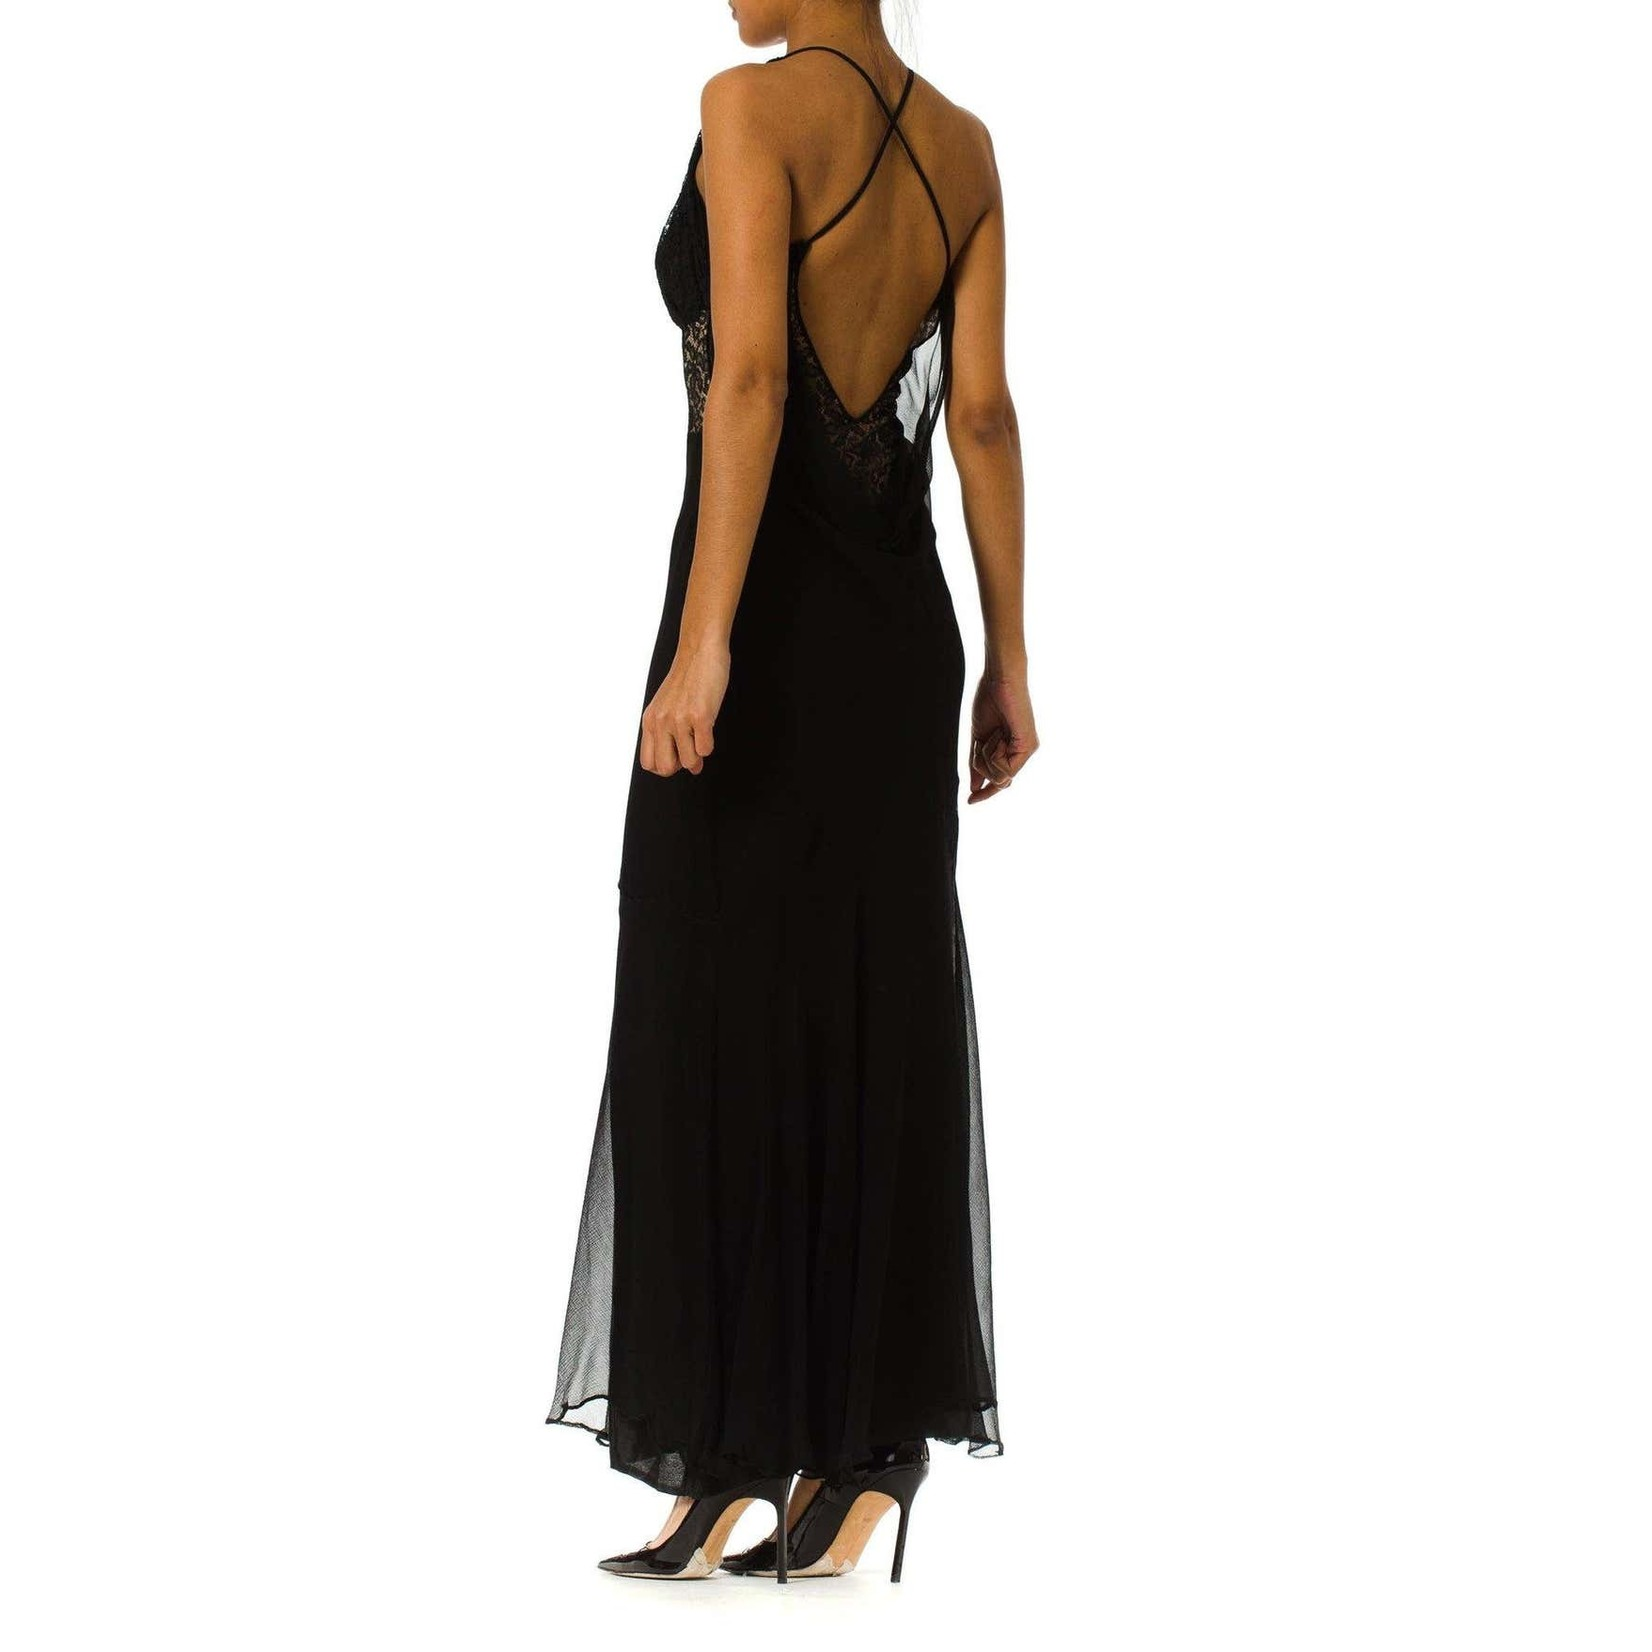 Morphew Black Sheer Silk Chiffon & 1930s Lace Backless Gown